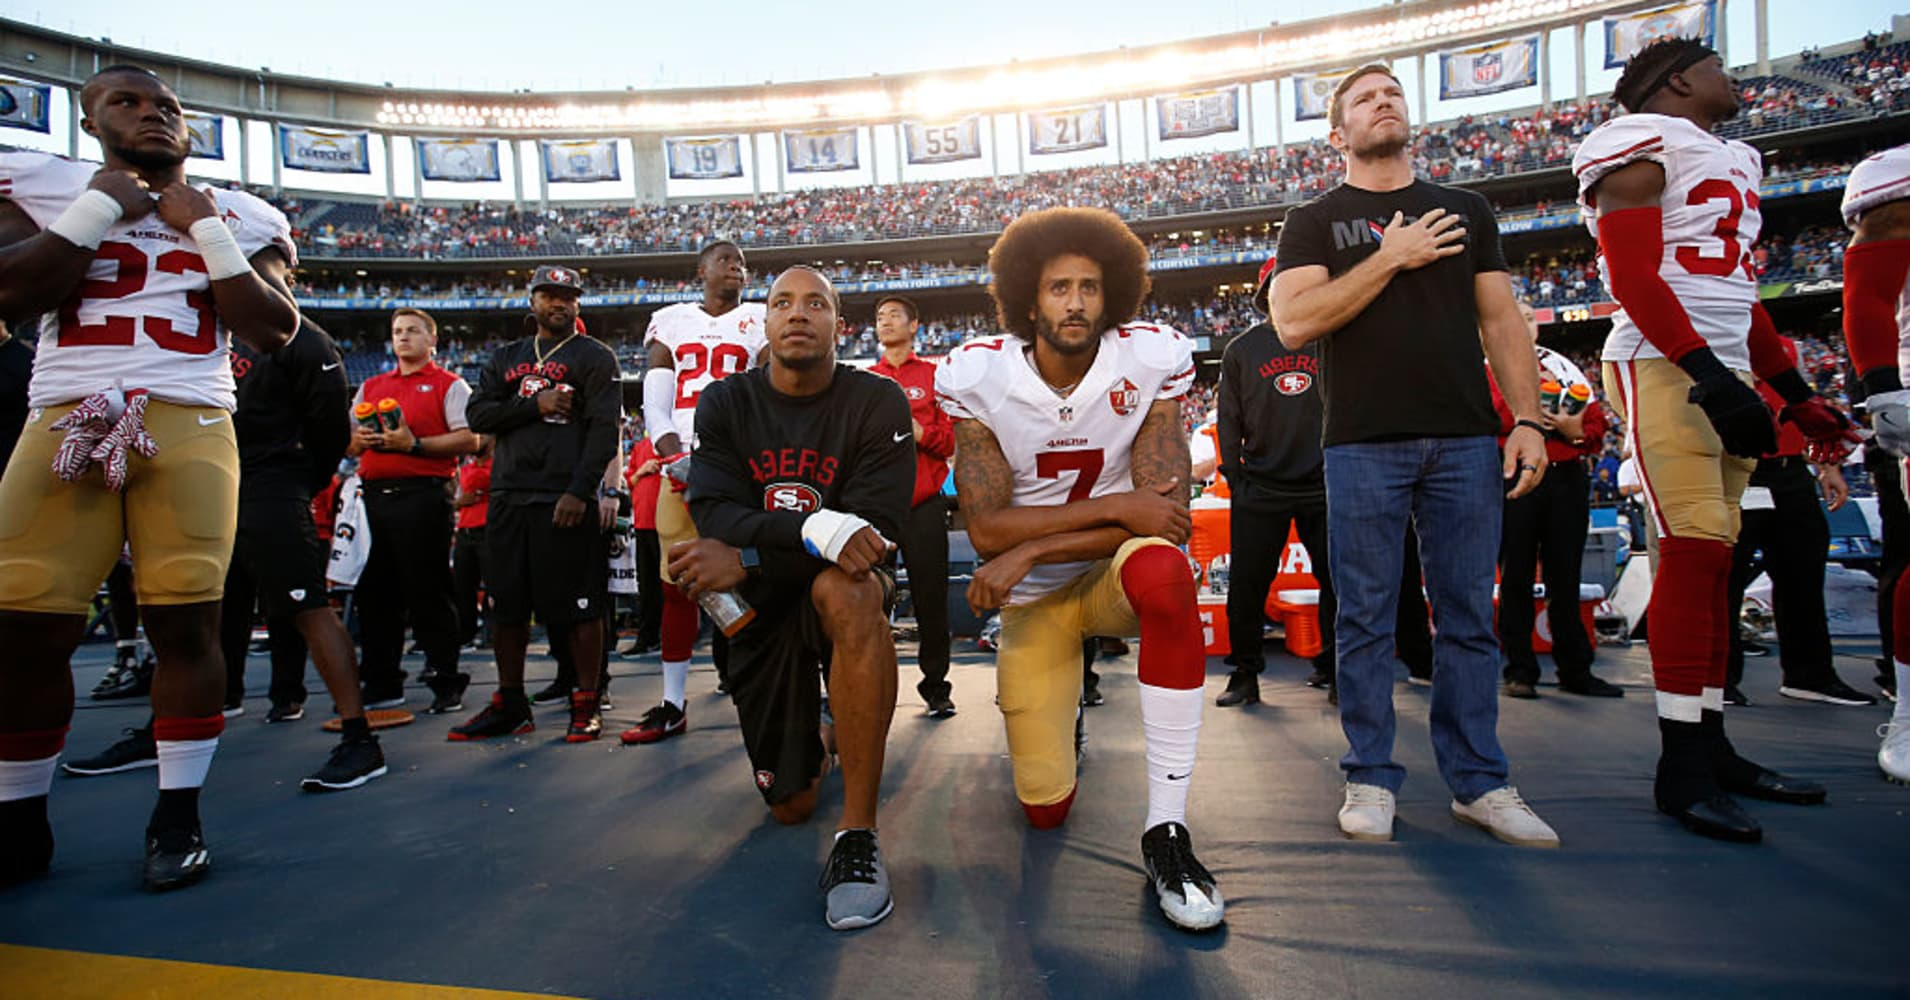 Eric Reid #35 and Colin Kaepernick #7 of the San Francisco 49ers kneel on the sideline during the anthem